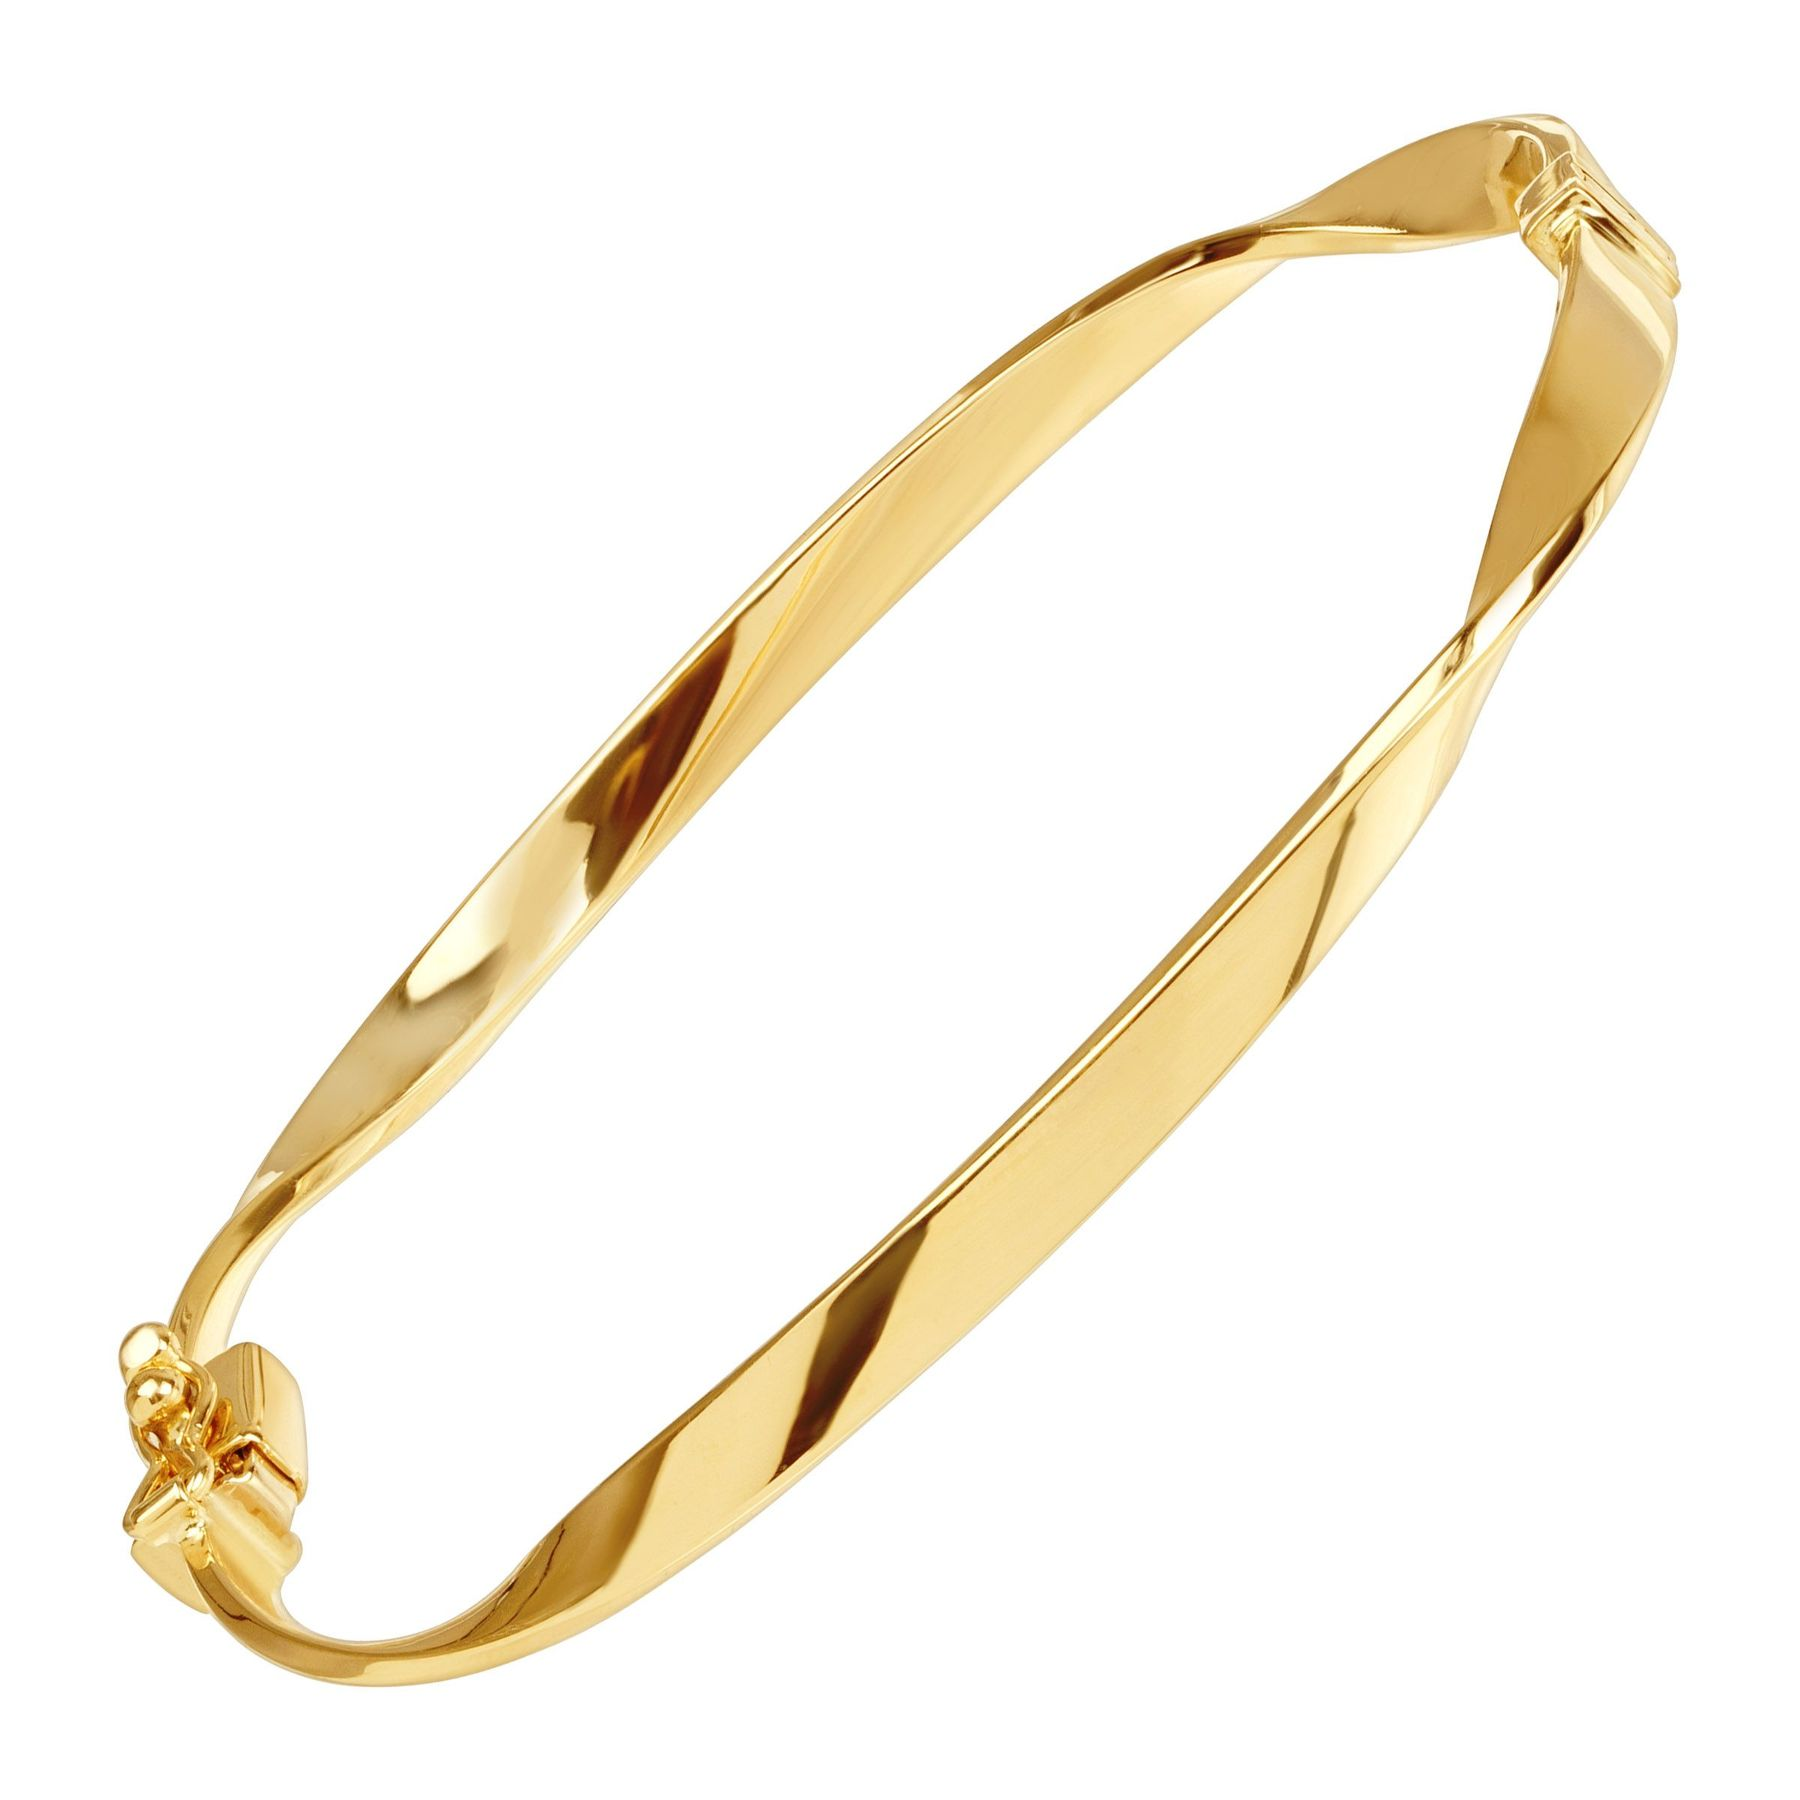 pave jewelry twist bangles view lyst spade kate gold hinged bangle do clearrose fullscreen the